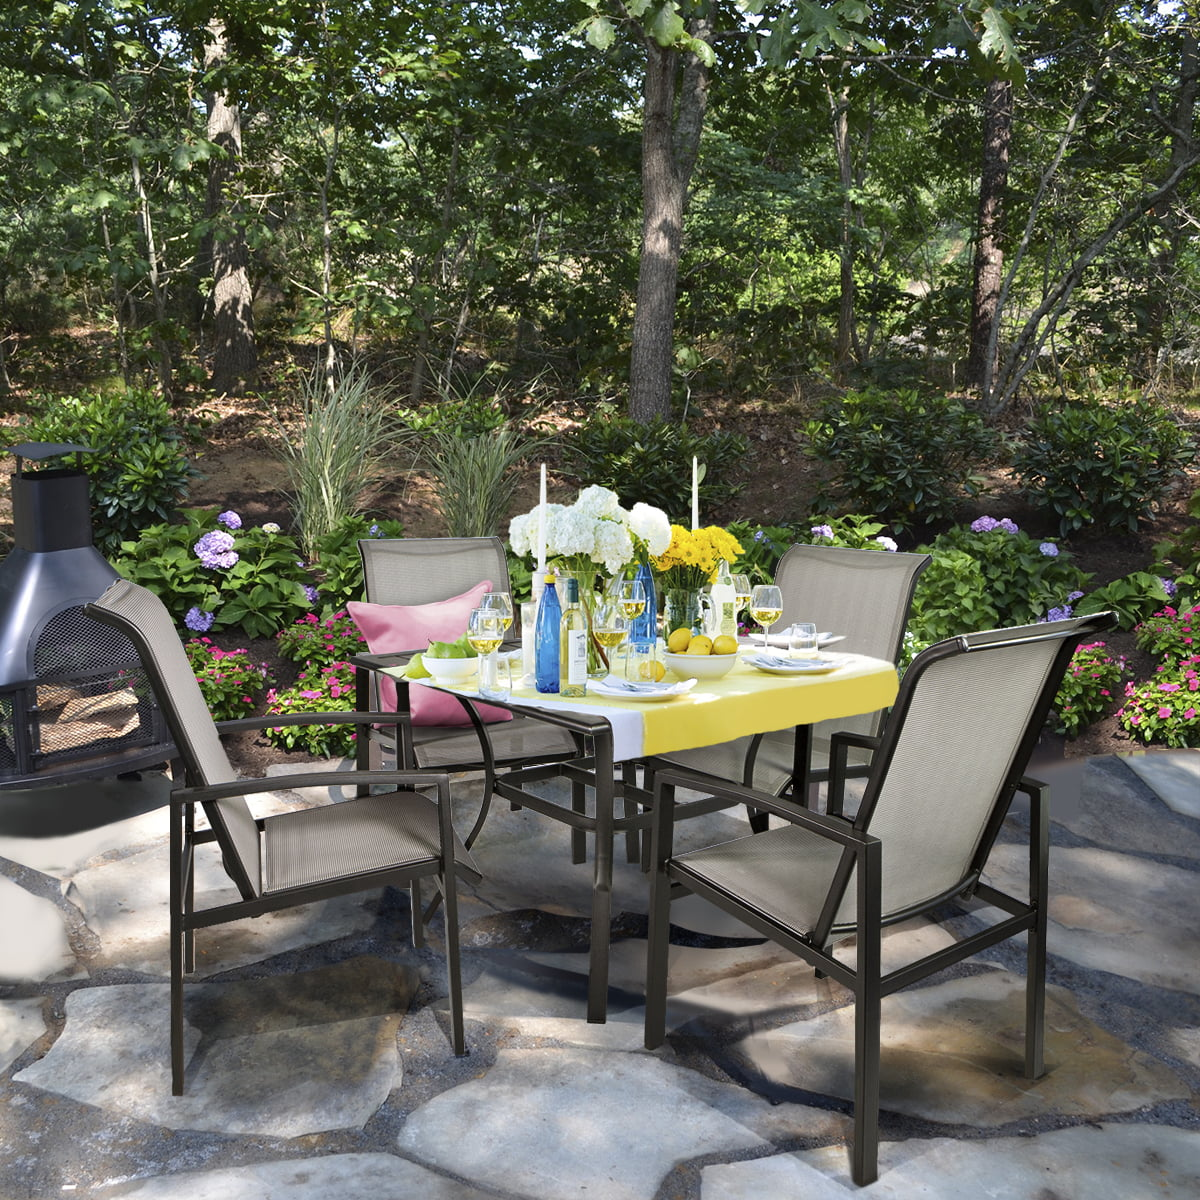 5pc outdoor patio table chair set mesh dining set gray